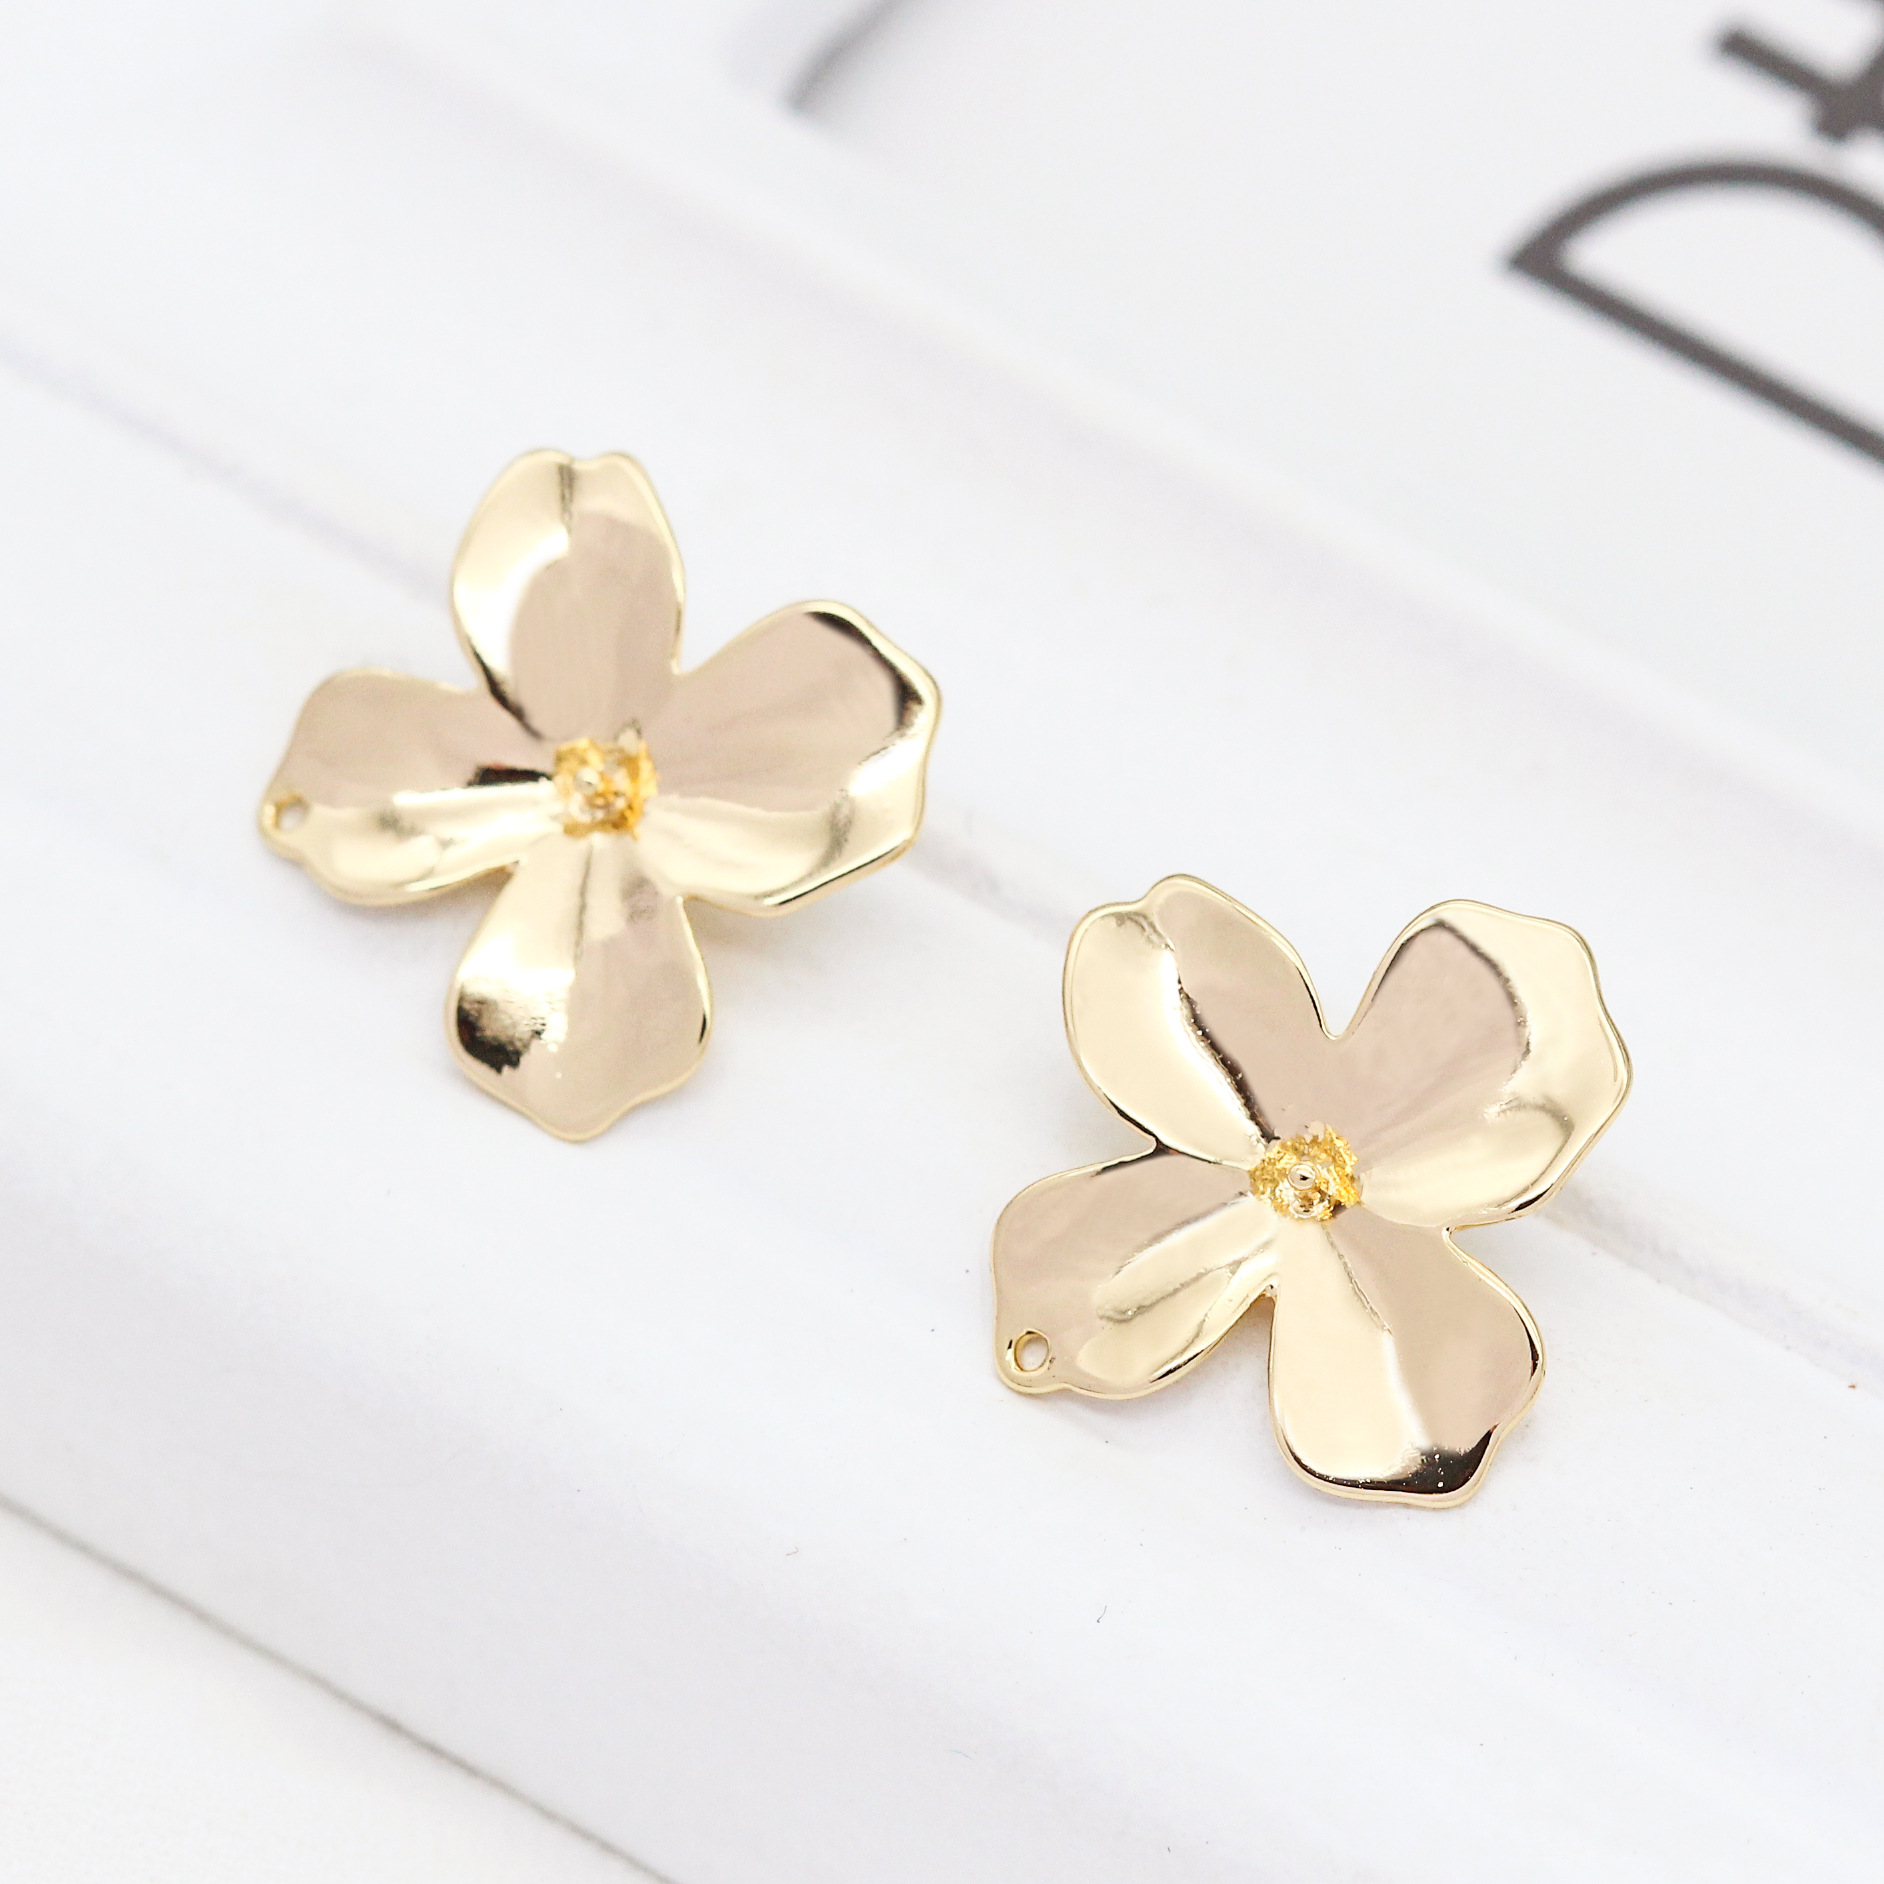 6PCS 14MM 24K Gold Color Brass Flower Charms Pendants High Quality Diy Jewelry Findings Accessories Wholesale